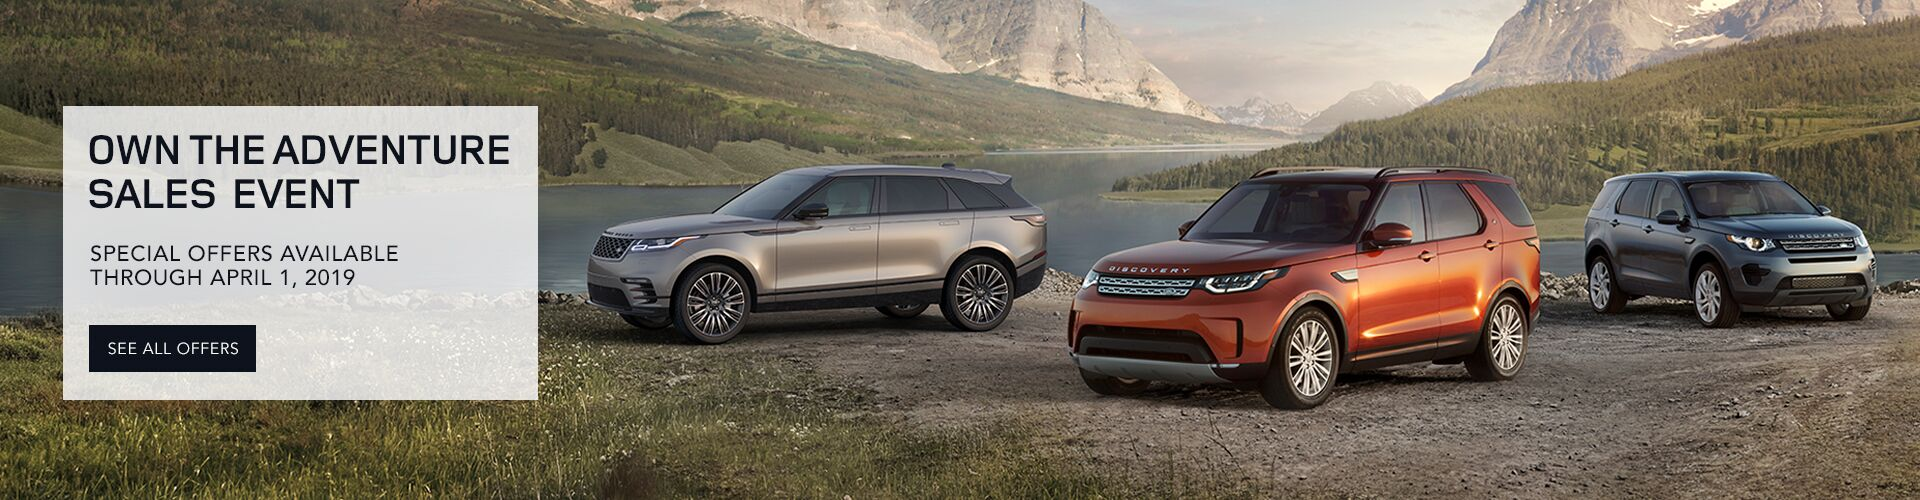 2019 Land Rover Spring Sales Event